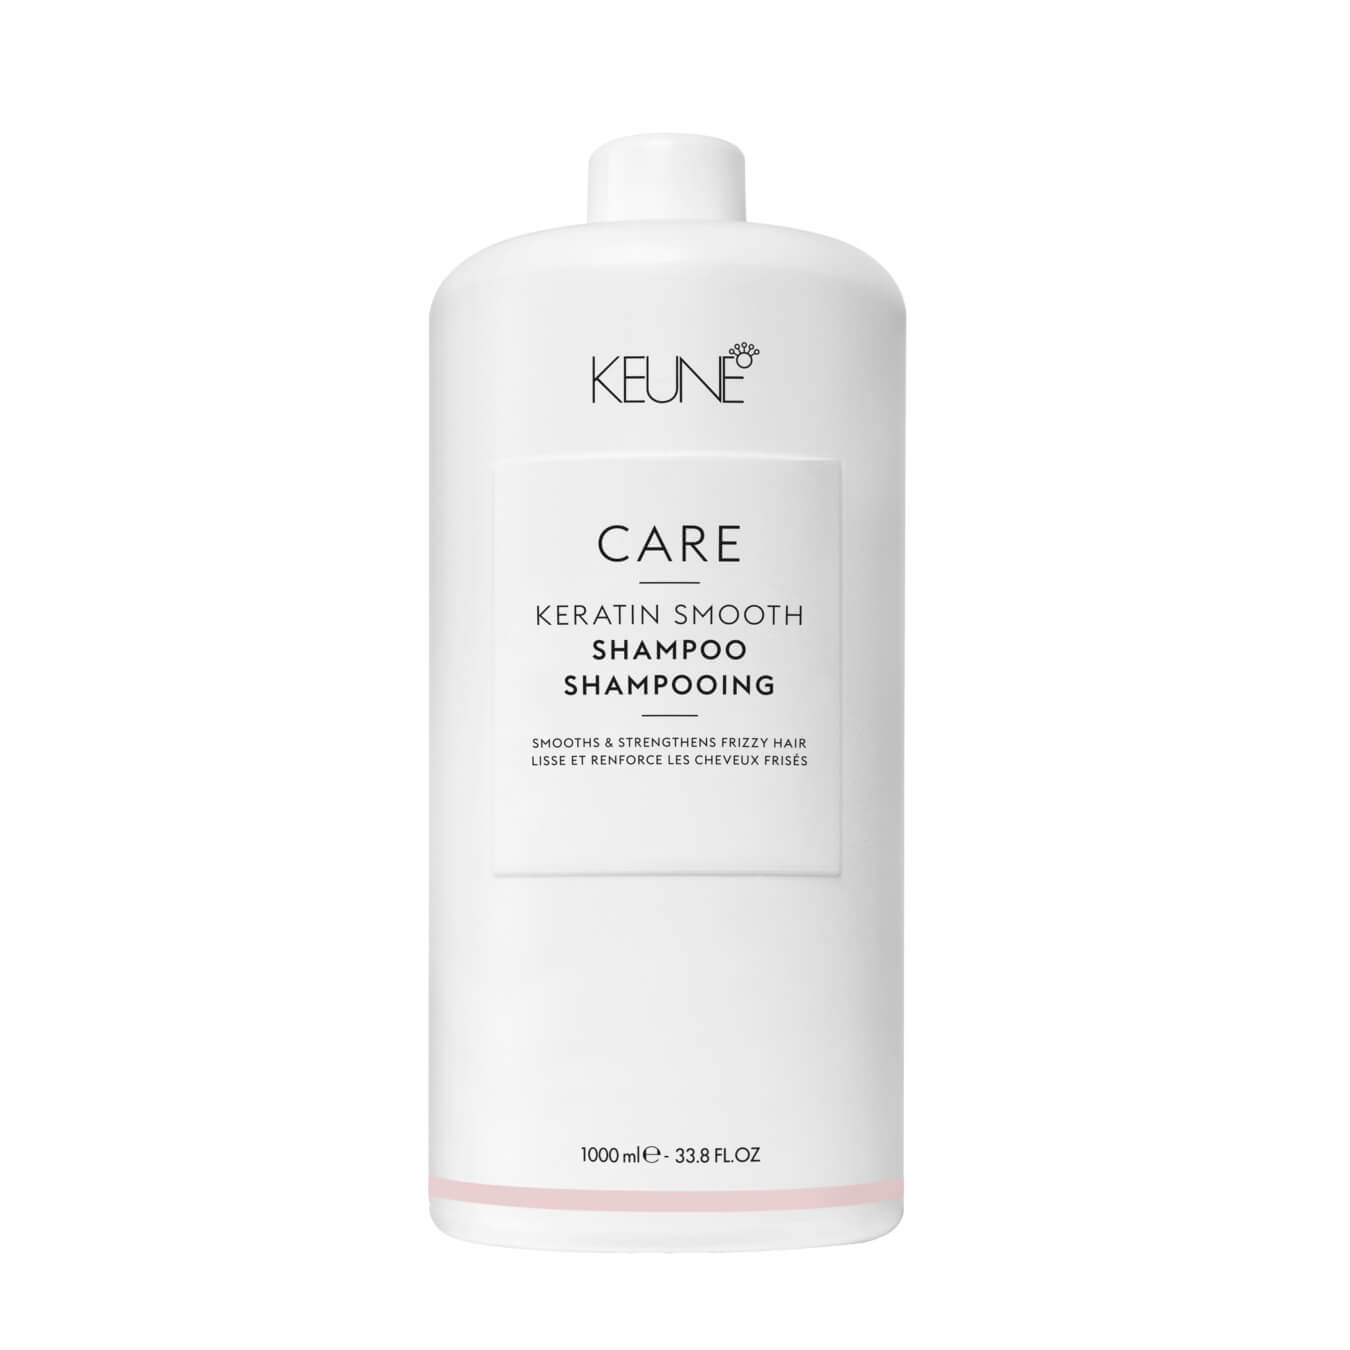 Kauf Keune Care Keratin Smooth Shampoo 1000ml